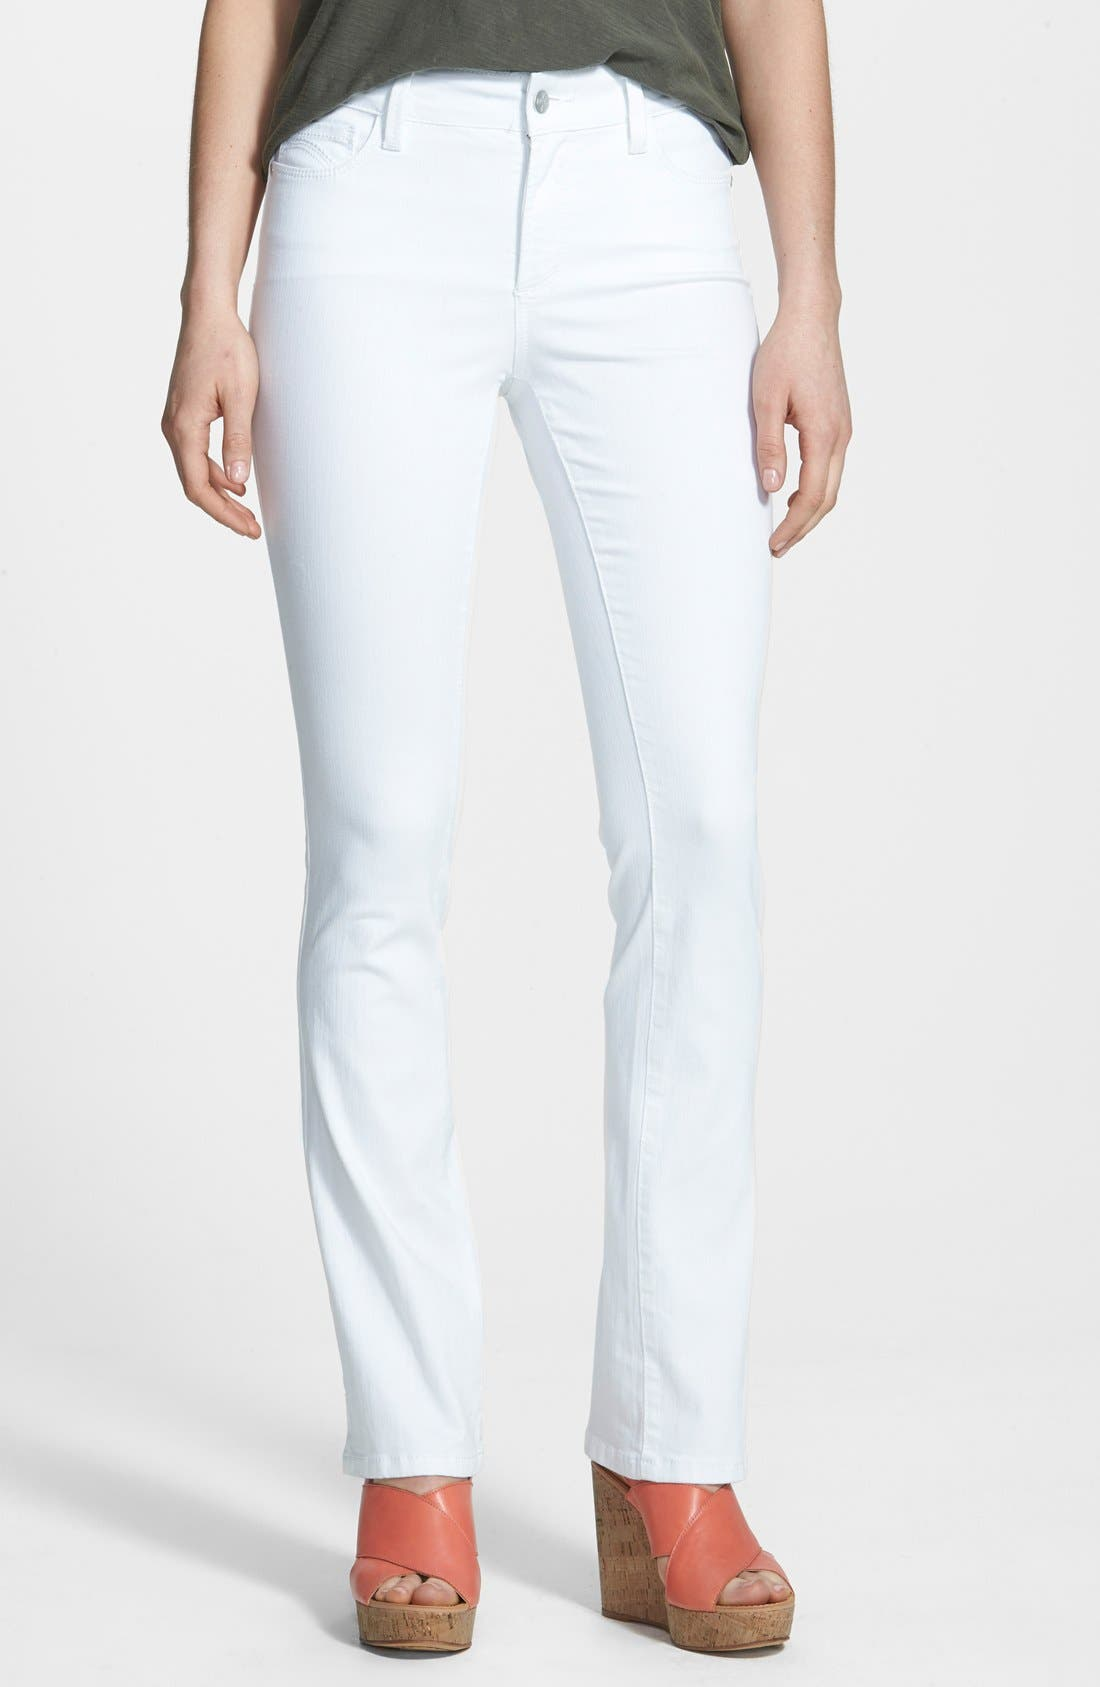 'Billie' Stretch Mini Bootcut Jeans,                         Main,                         color, Optic White